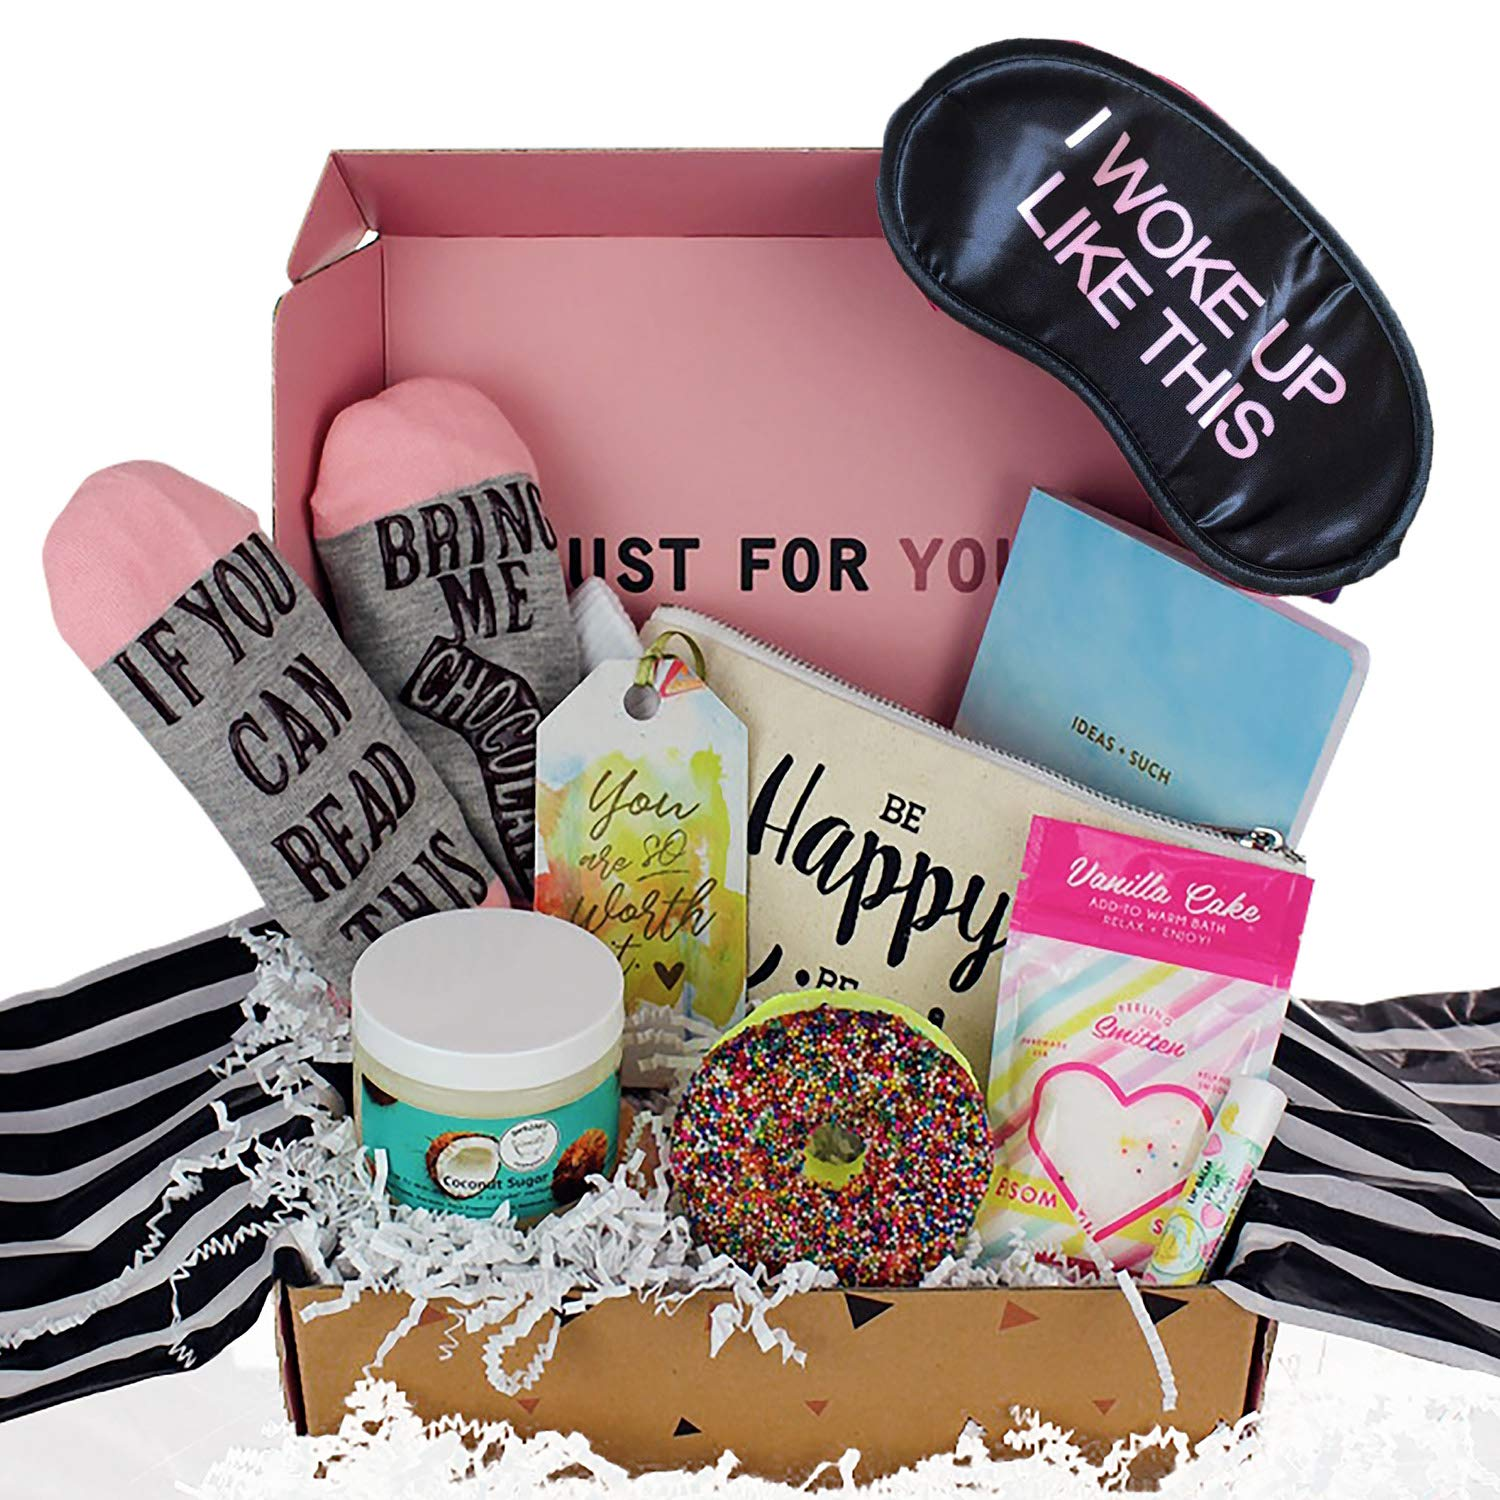 Milky Chic Special Women's Birthday Gift Box Basket for Mom, Wife, Sister, Friend, Pack of 8 Fun Unique Gifts For Her by Milky Chic